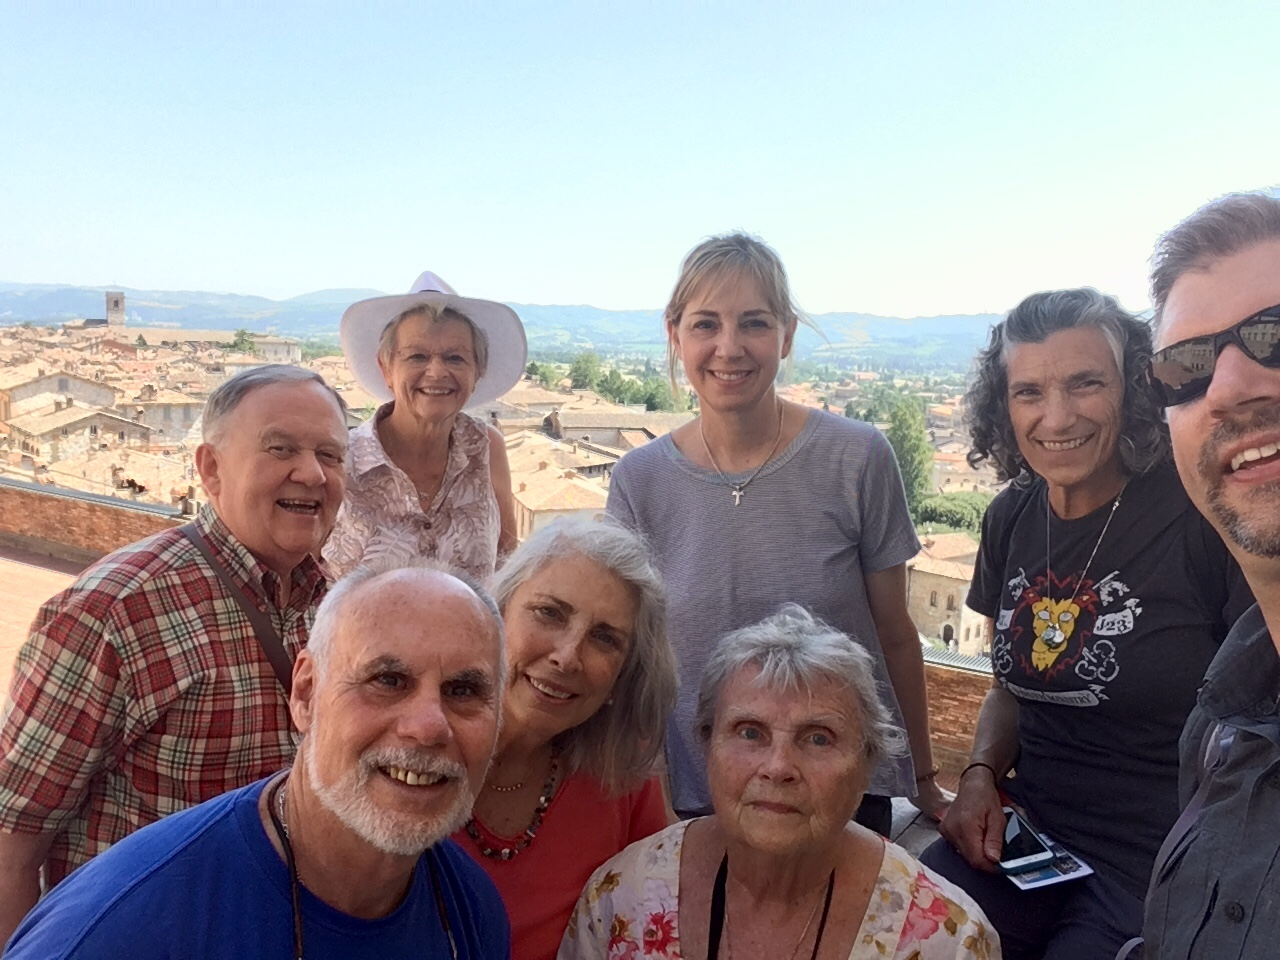 Michele in center-top with other participants during the Pace e Bene Peace and Nonviolence Pilgrimage